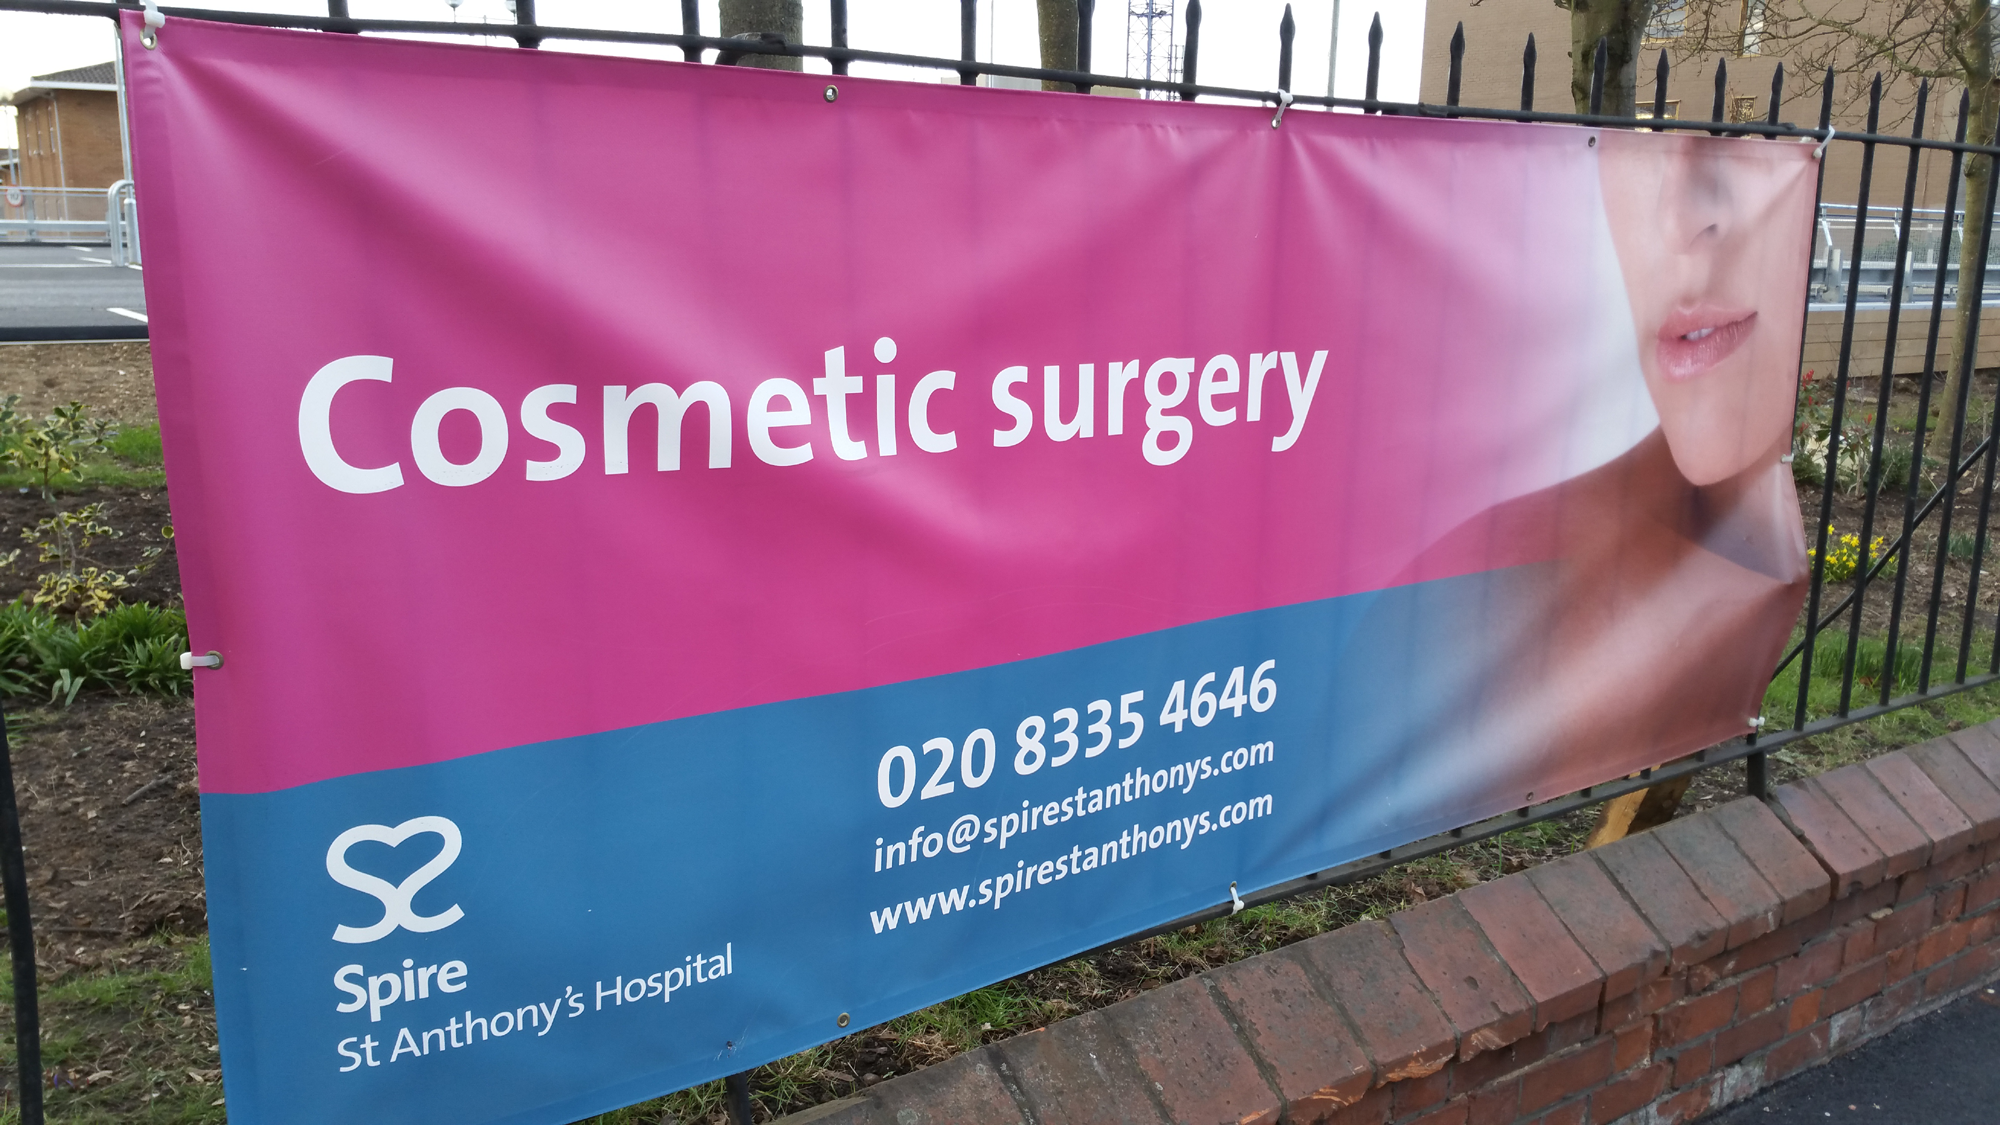 Spire St Anthony's Hospital - Cosmetic surgery